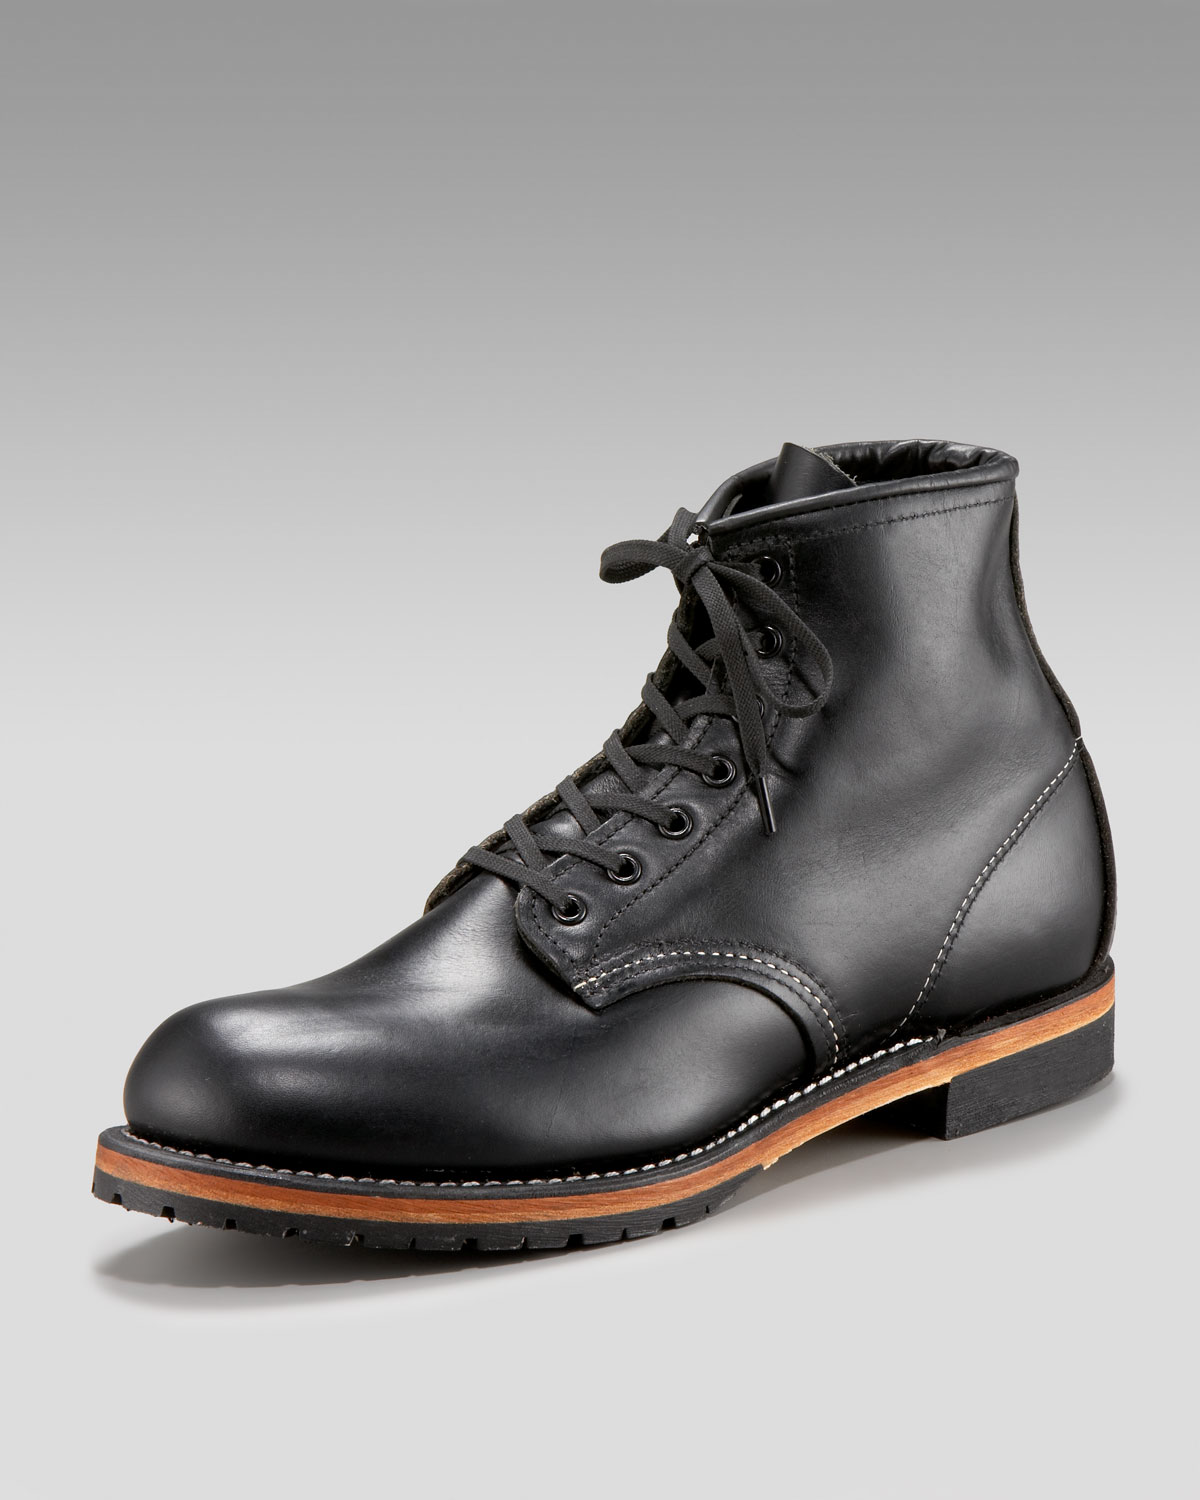 Red Wing Mens Boots RweThbU0